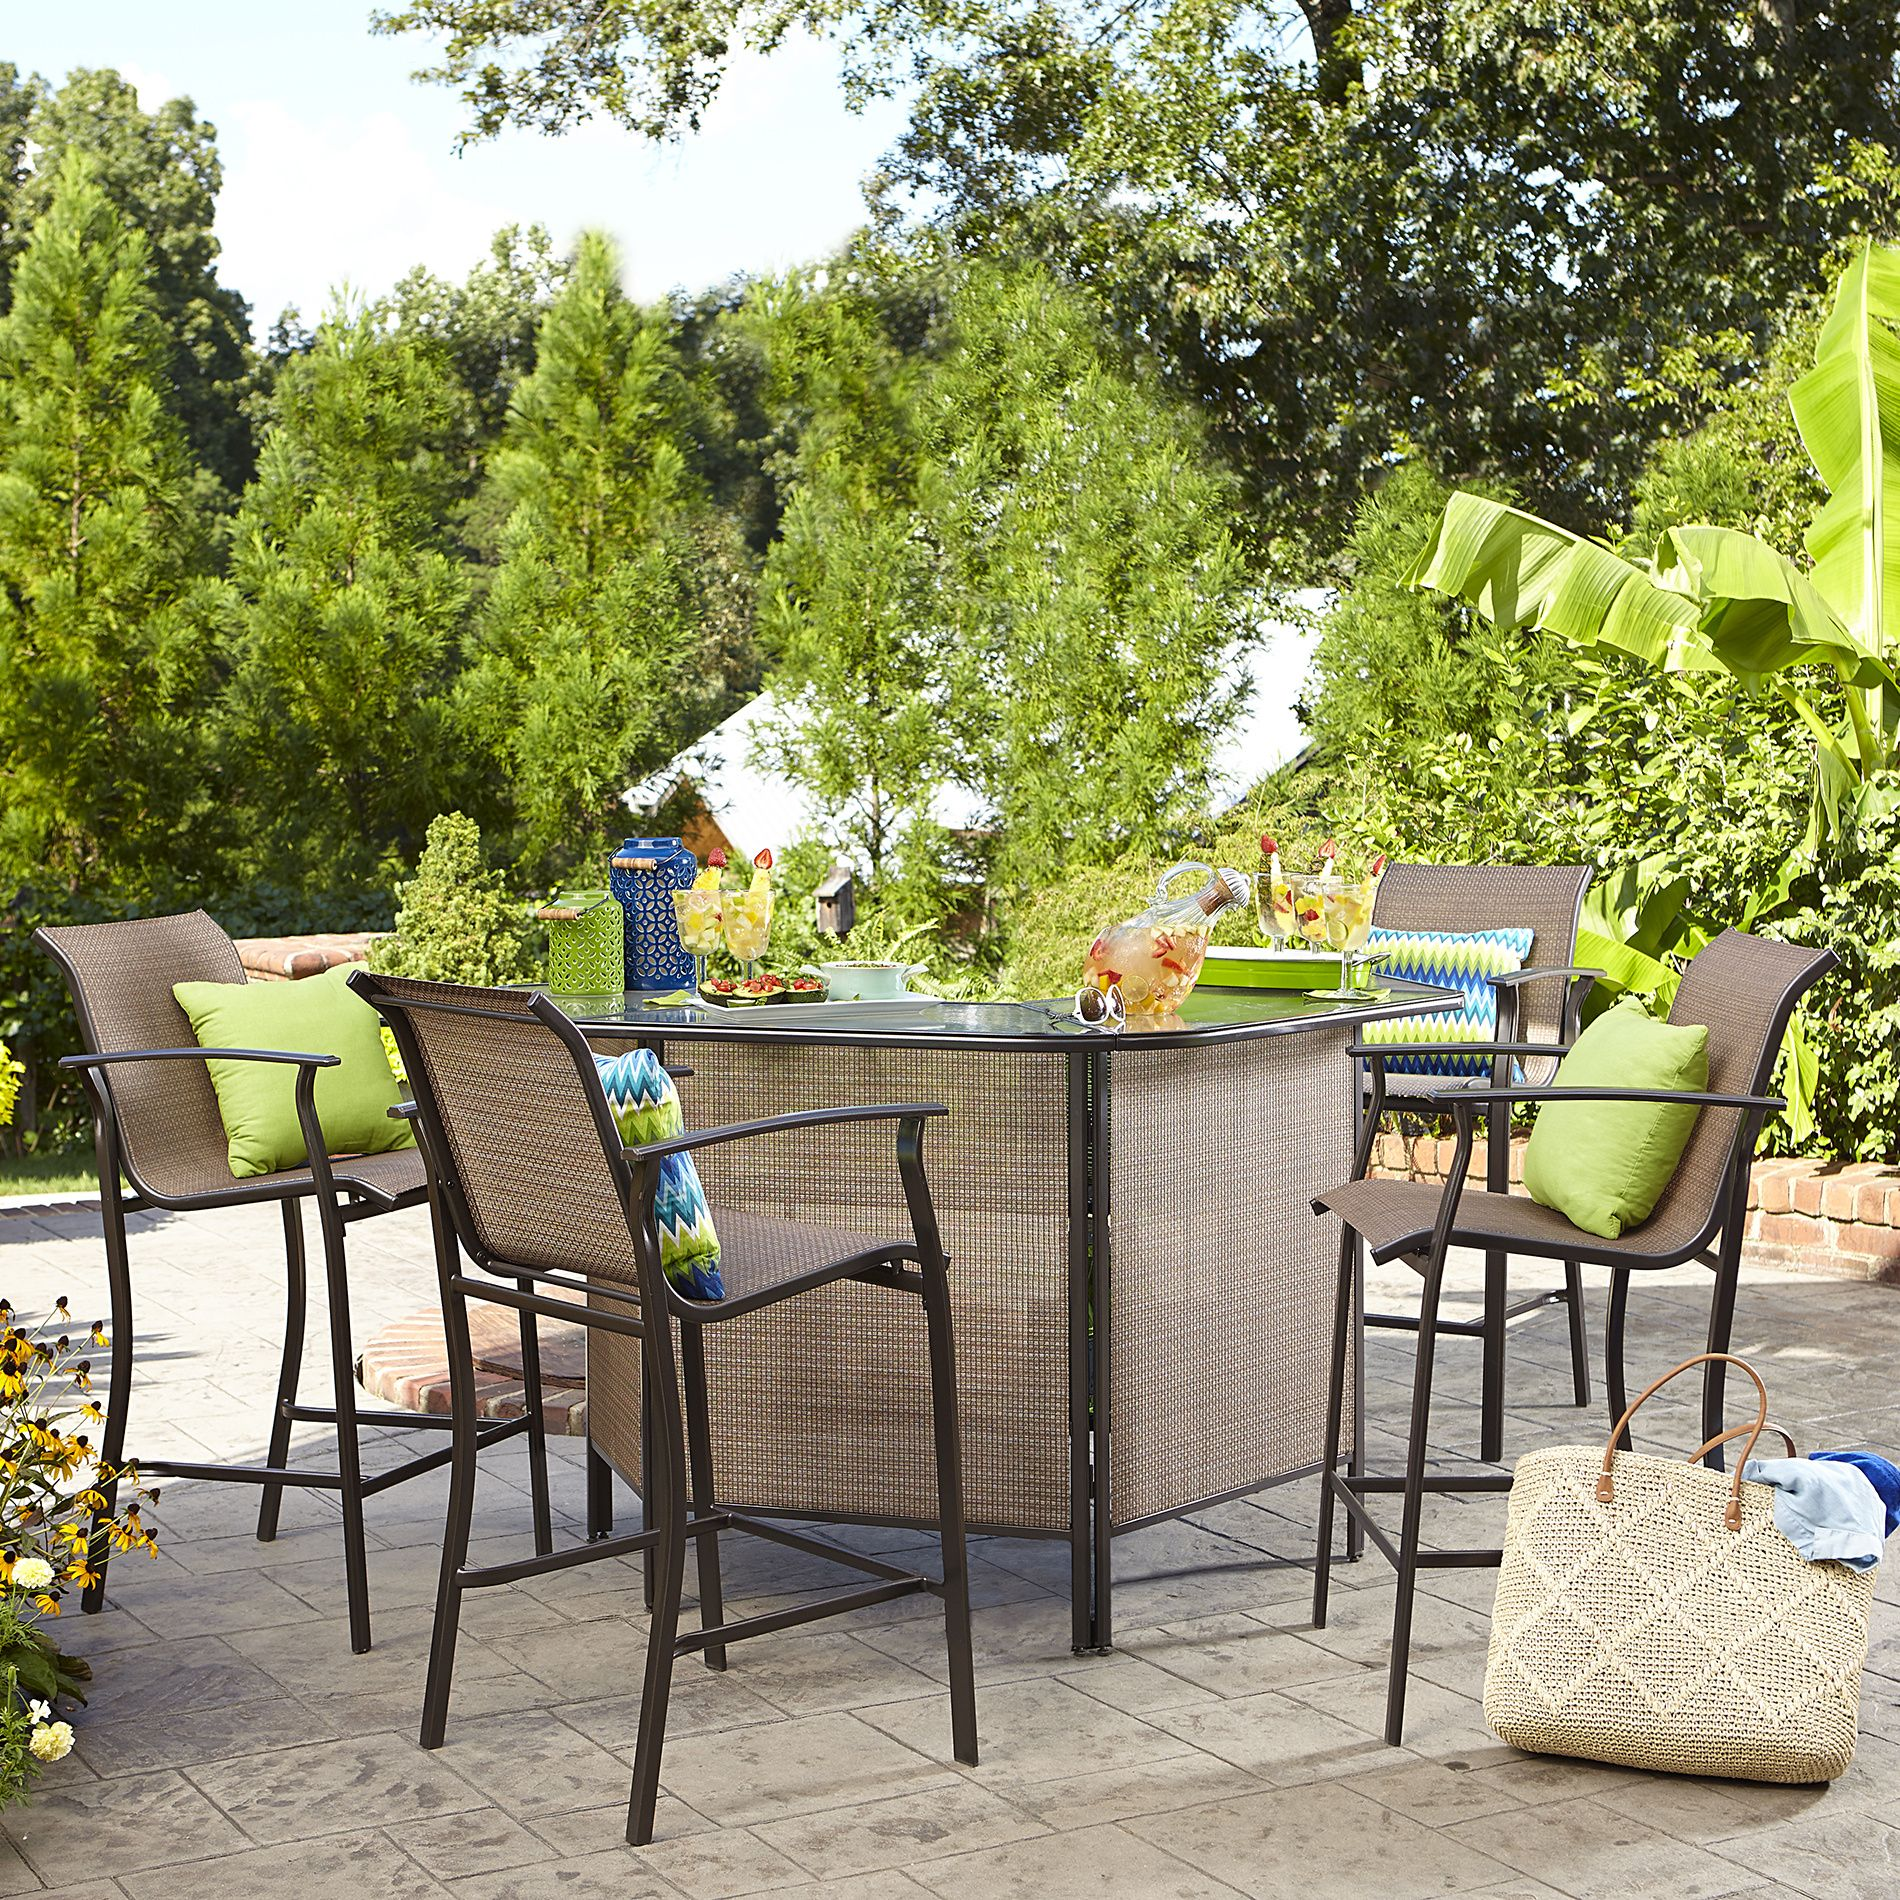 Bar Set Outdoor Patio Furniture Best Color Furniture for You